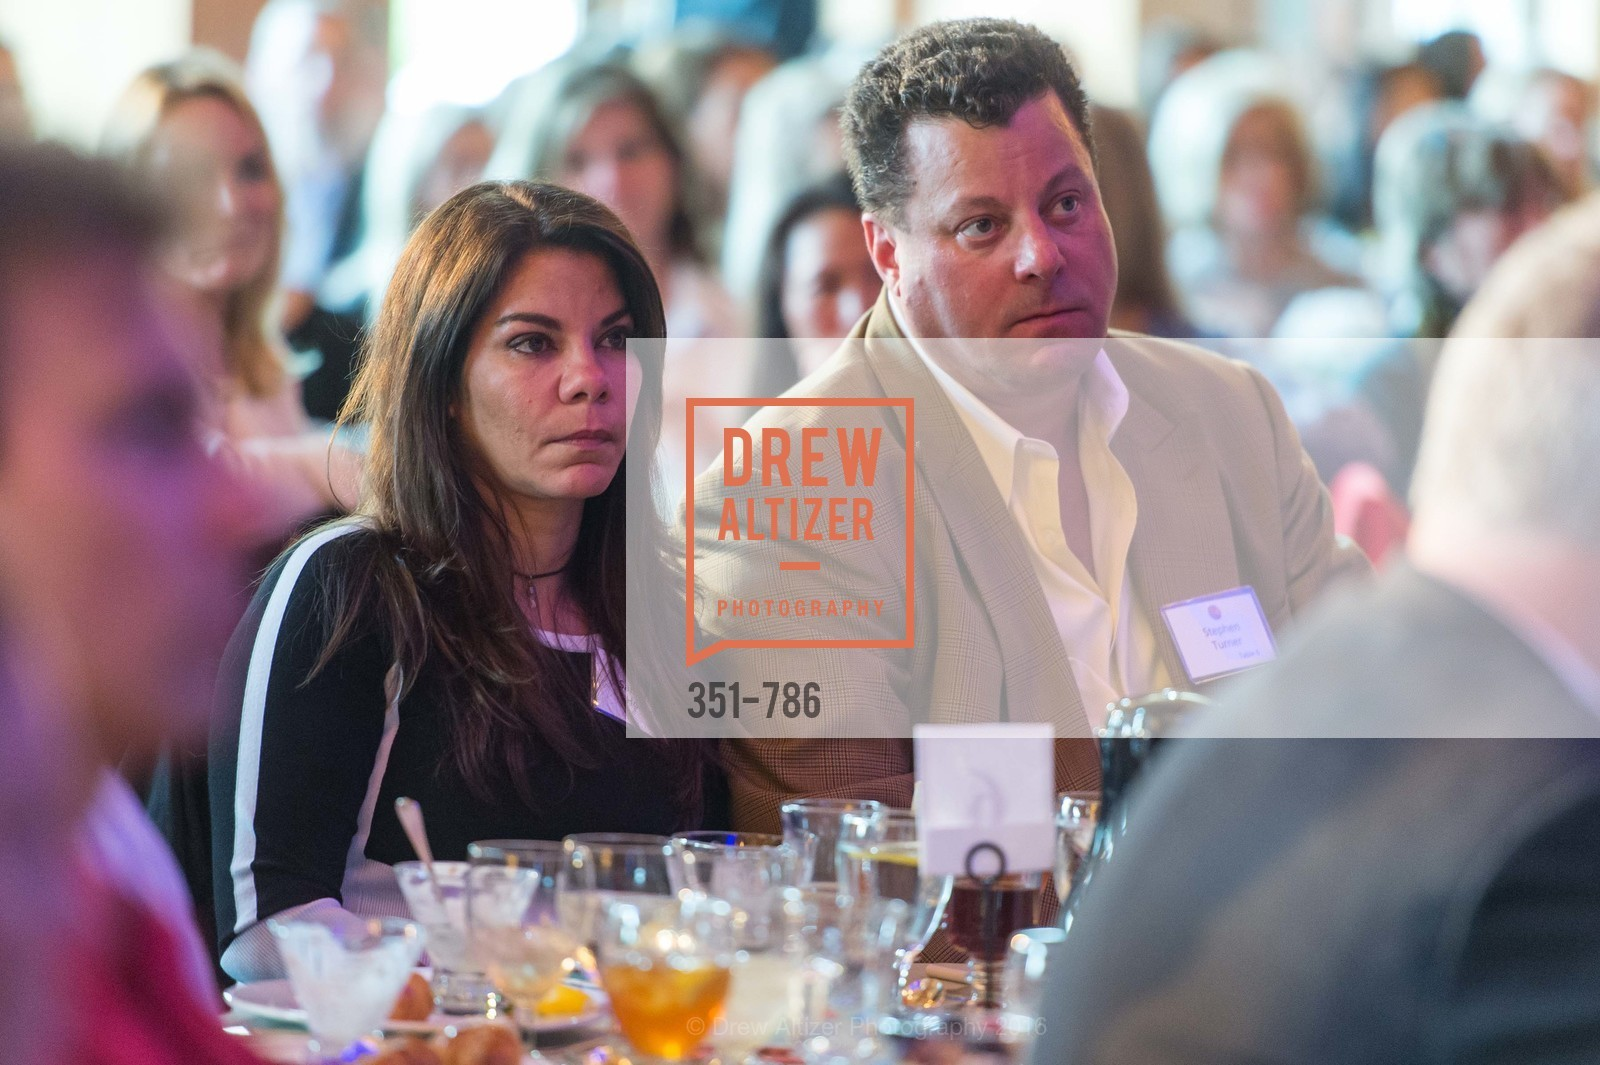 Samantha Hoover, Stephen Turner, The Children's Health Council Breakfast, Sharon Height Golf and Country Club. 900 Sand Hill Rd, February 2nd, 2016,Drew Altizer, Drew Altizer Photography, full-service agency, private events, San Francisco photographer, photographer california